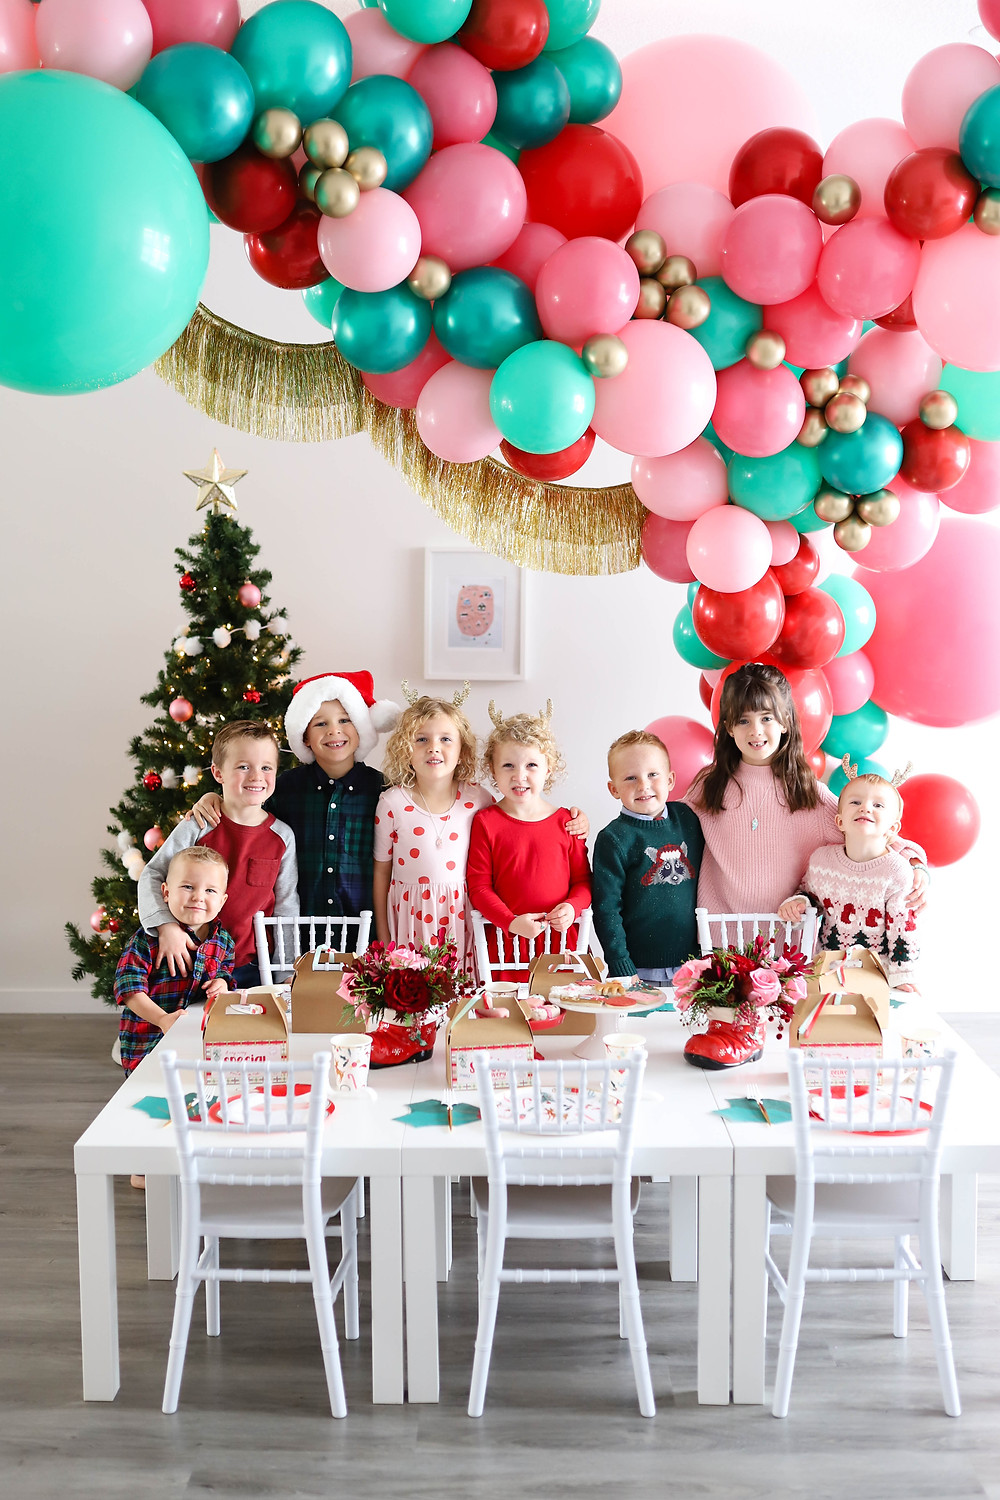 A kids christmas holiday party planned with balloons, gingerbread house and cookie decorating, DIY decor and magical printables.